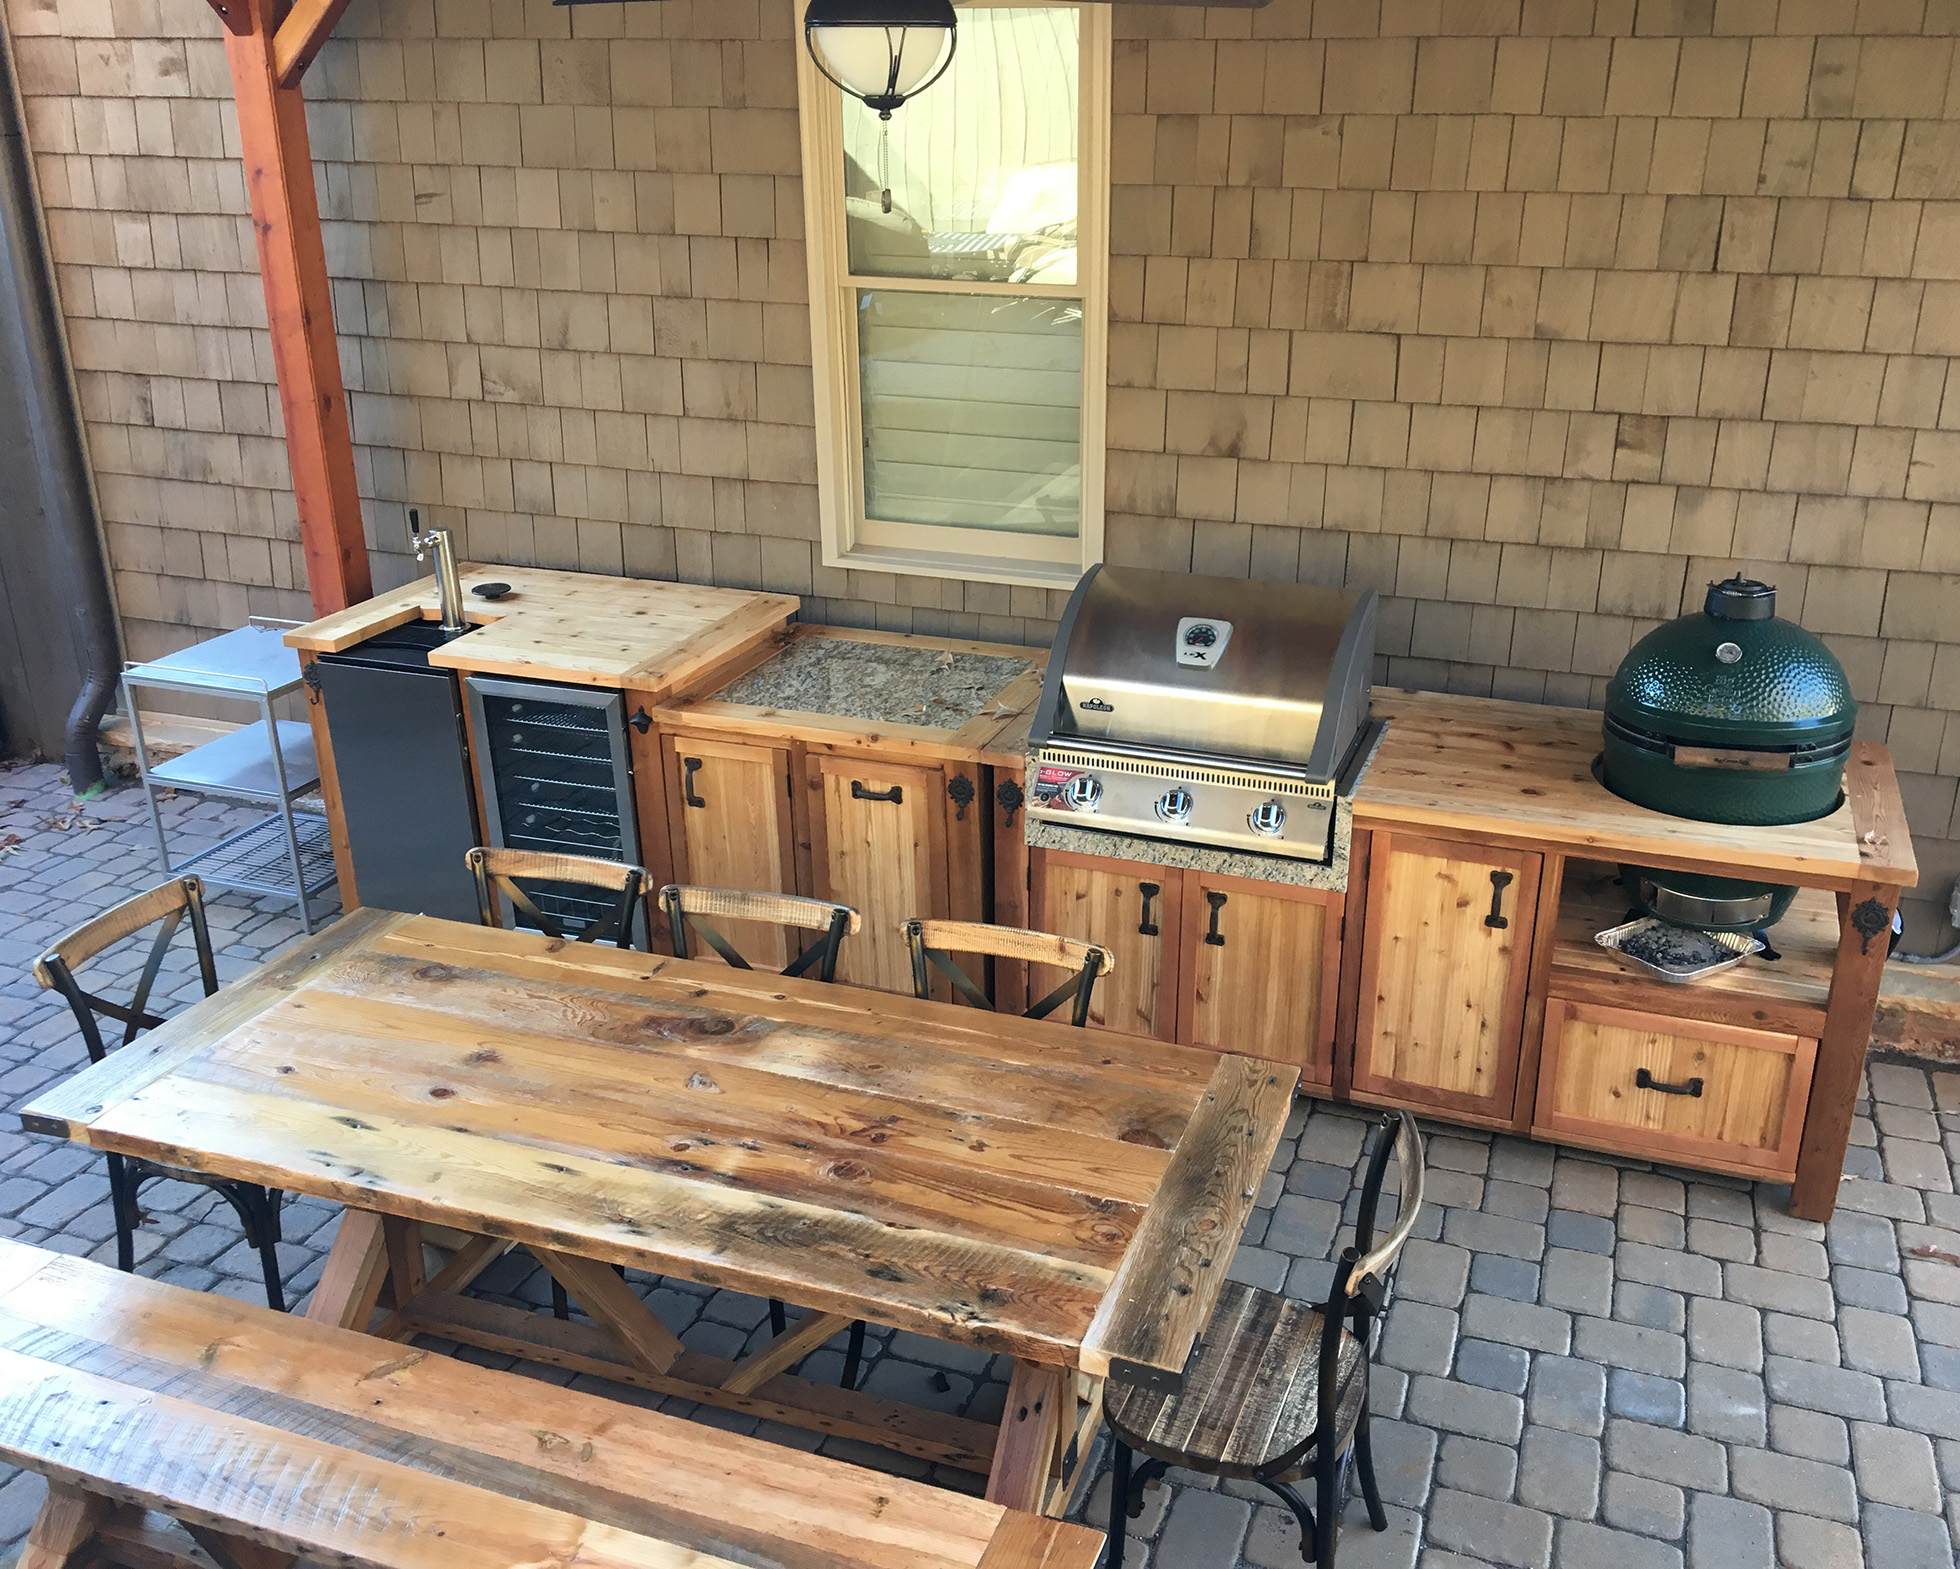 Wooden outdoor kitchen with grill, mini fridge, and table